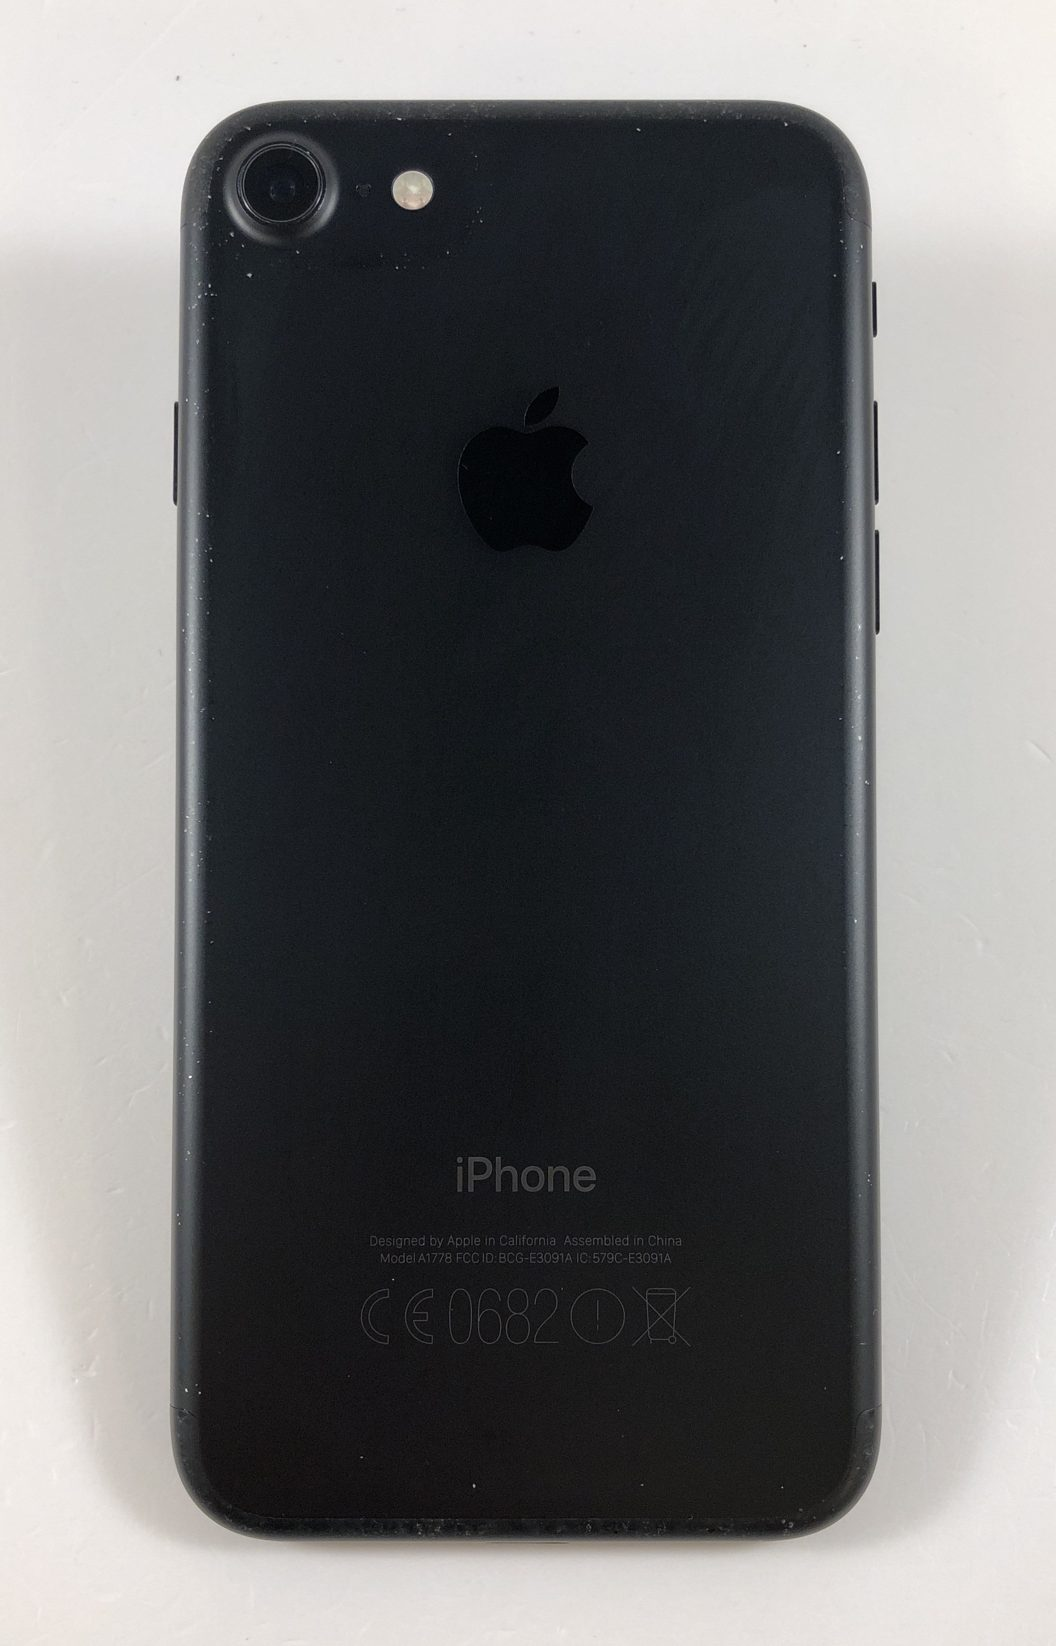 iPhone 7 32GB, 32GB, Black, image 2